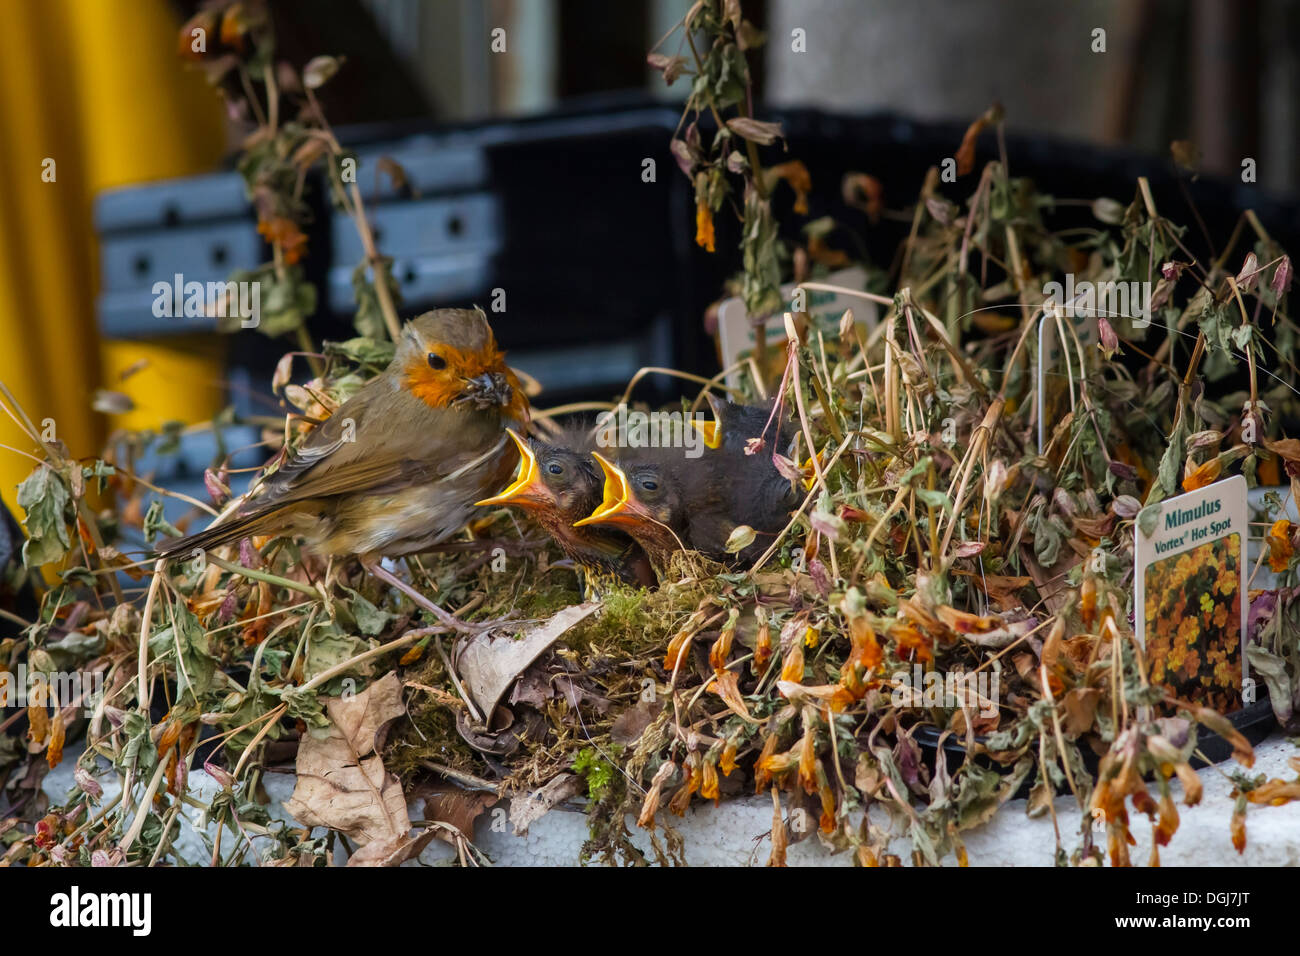 Robin feeding a nest of hungry young in a plant tray at a garden centre. - Stock Image